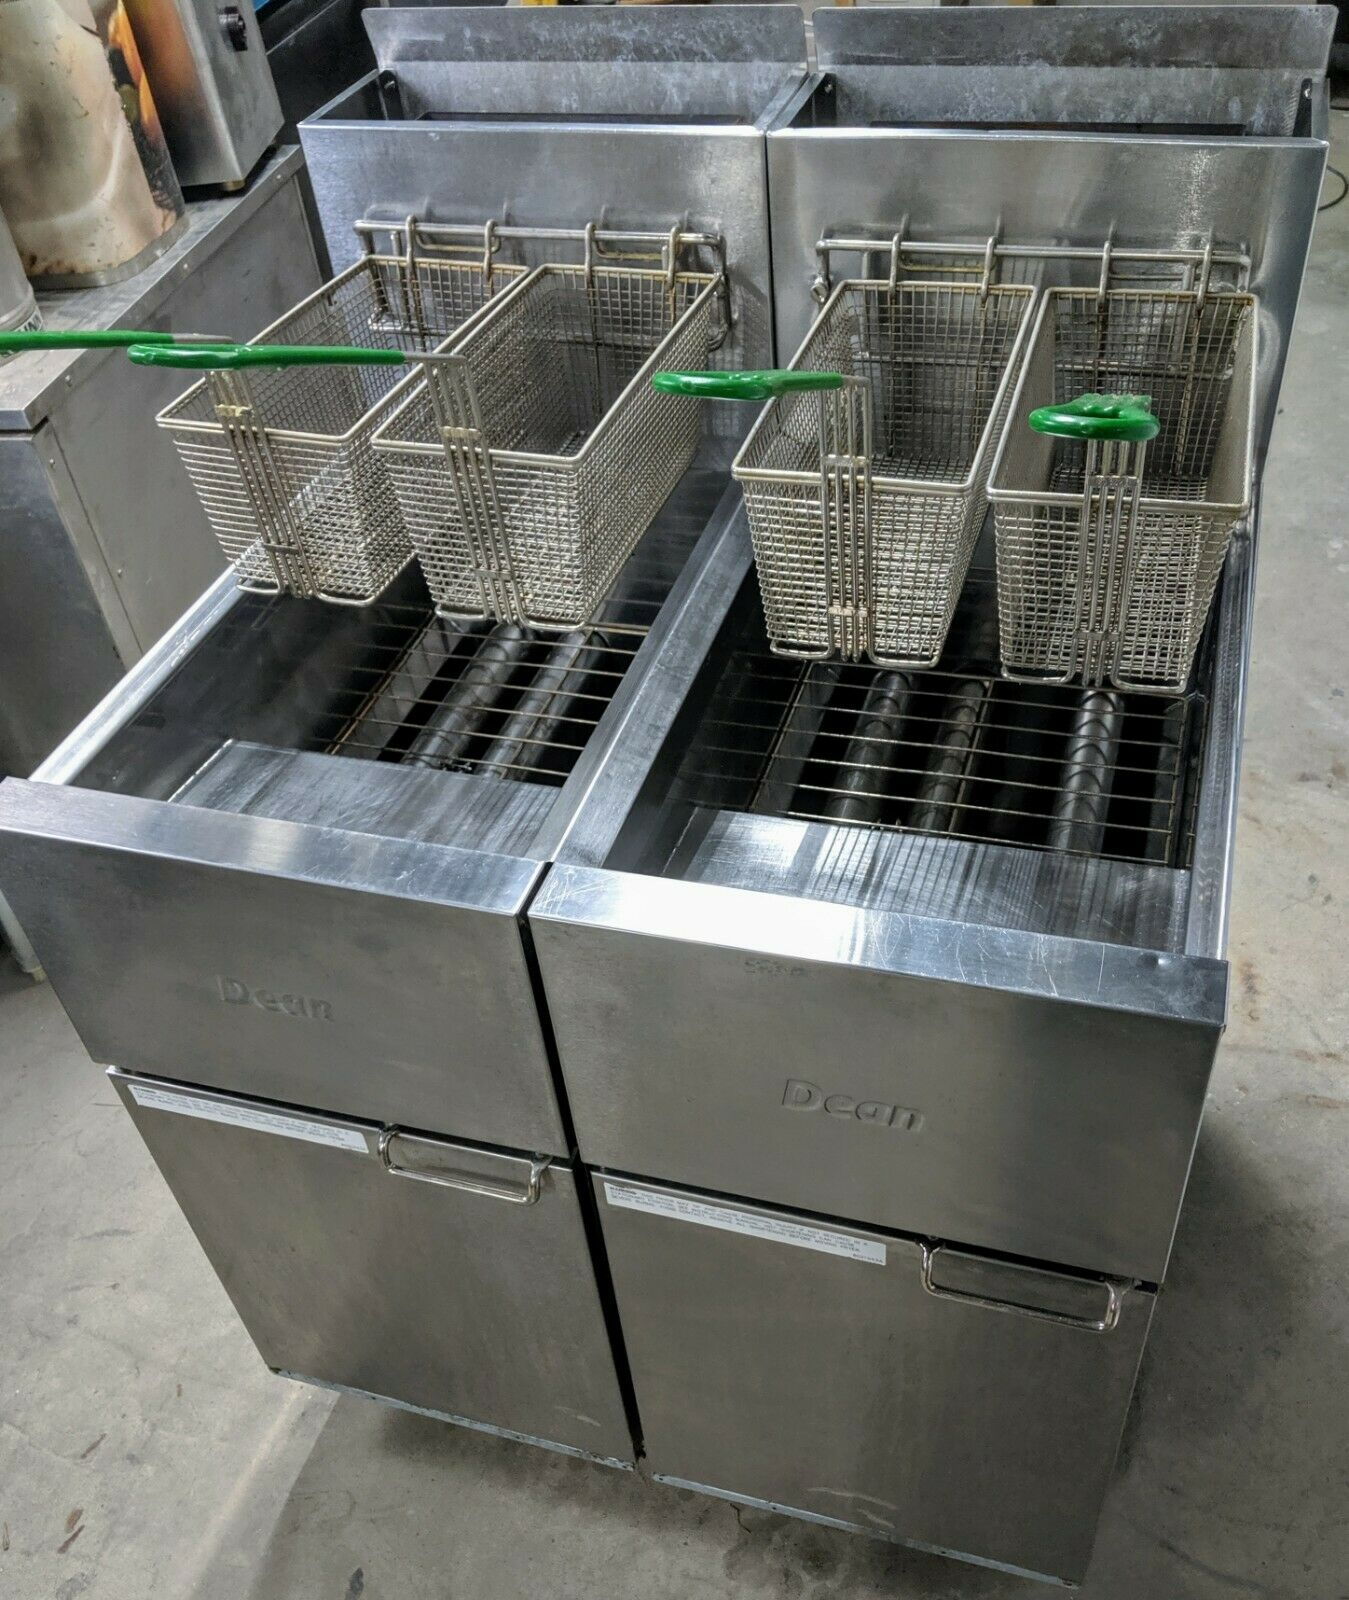 Used Dean (2) SR42G Super Runner Value Fryer gas